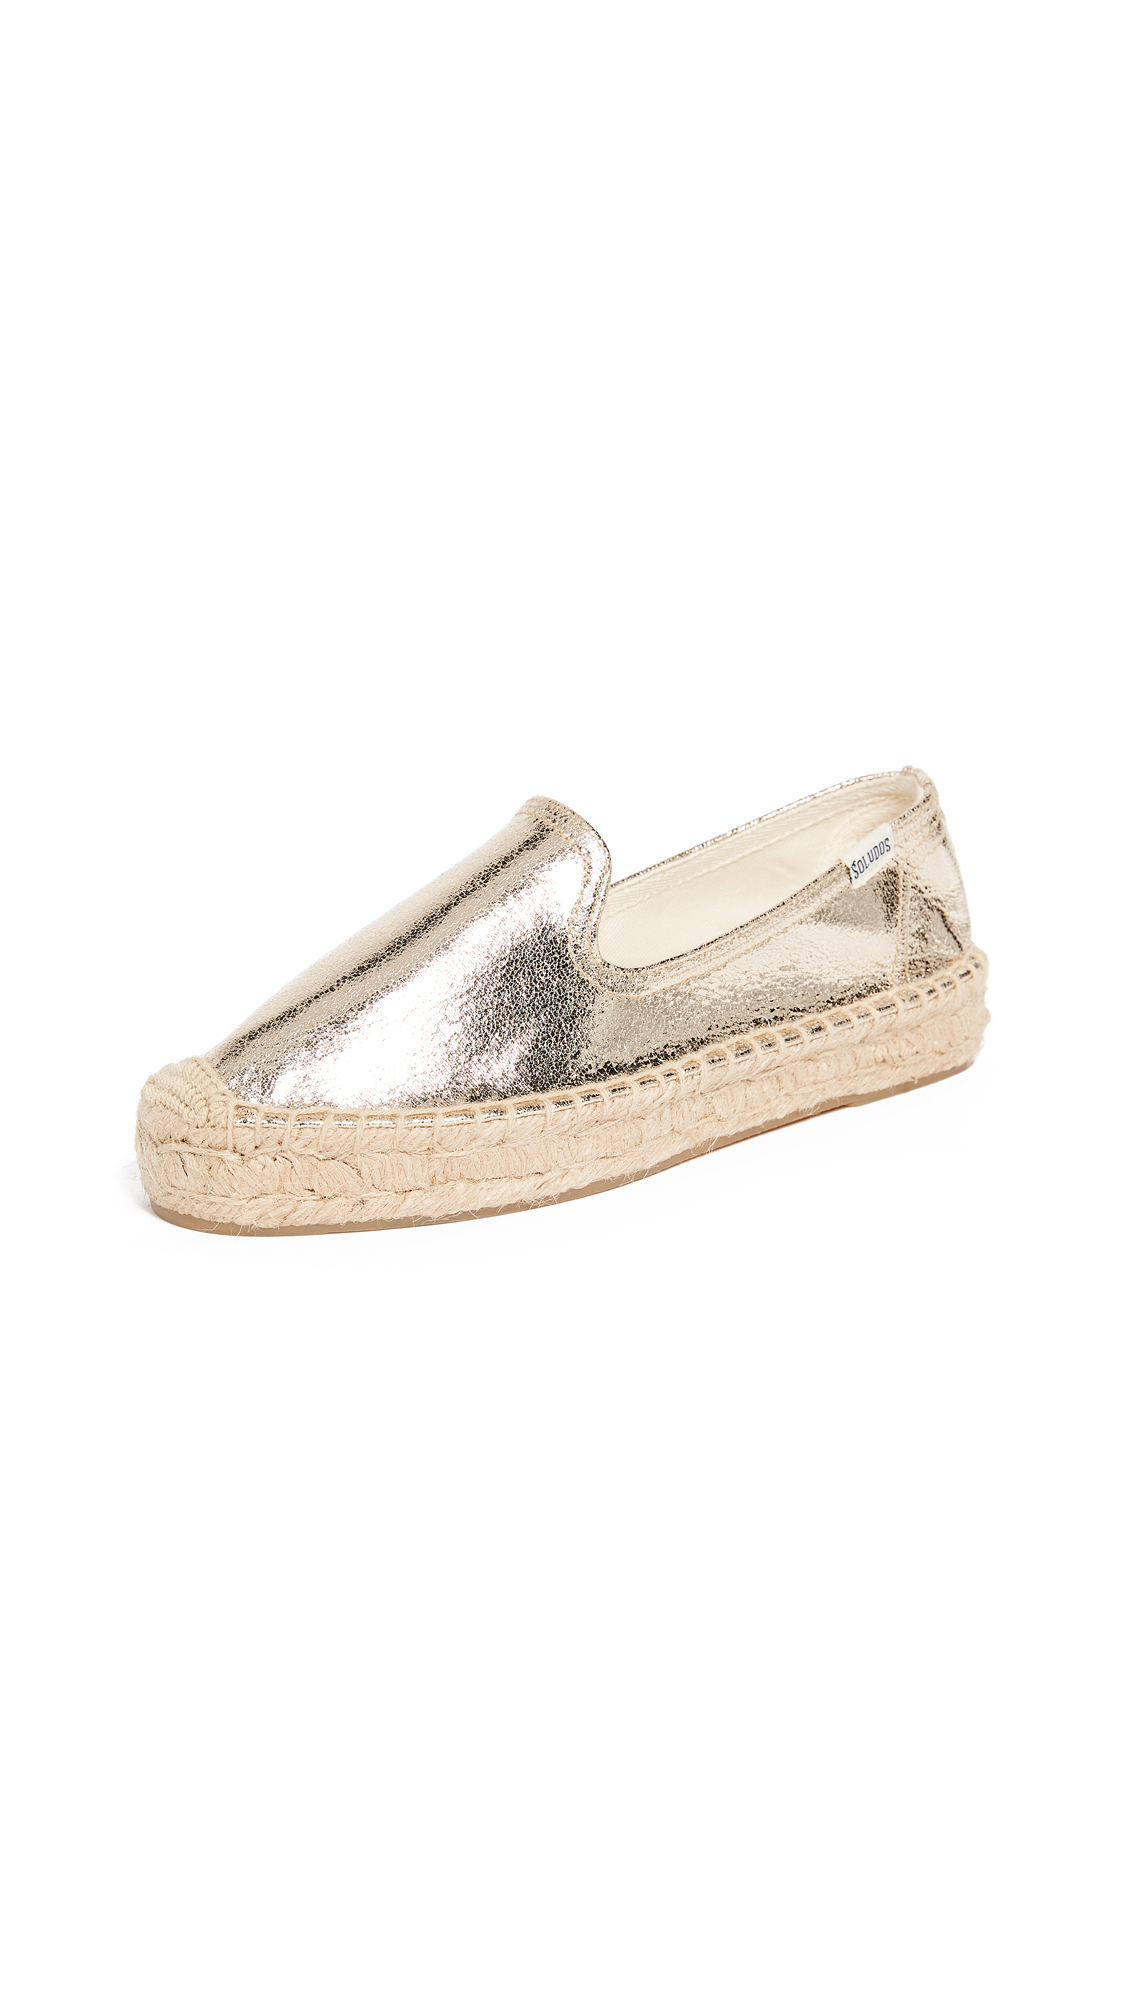 Soludos Platform Metallic Smoking Slippers - Pale Gold